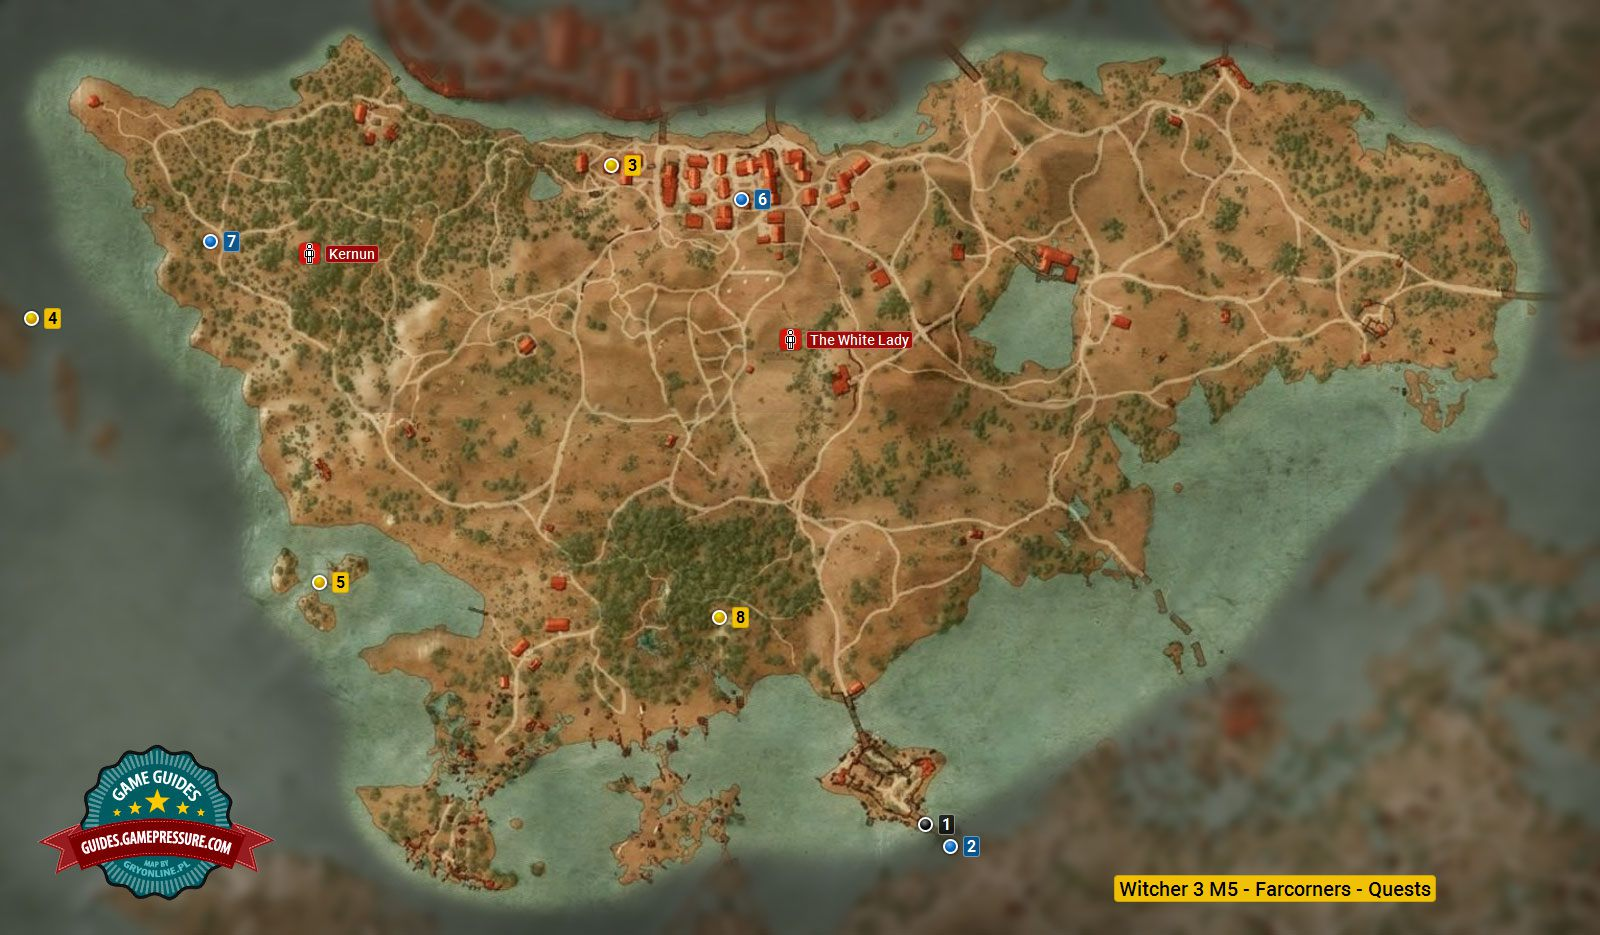 Witcher 3 M5 - Farcorners - Quests